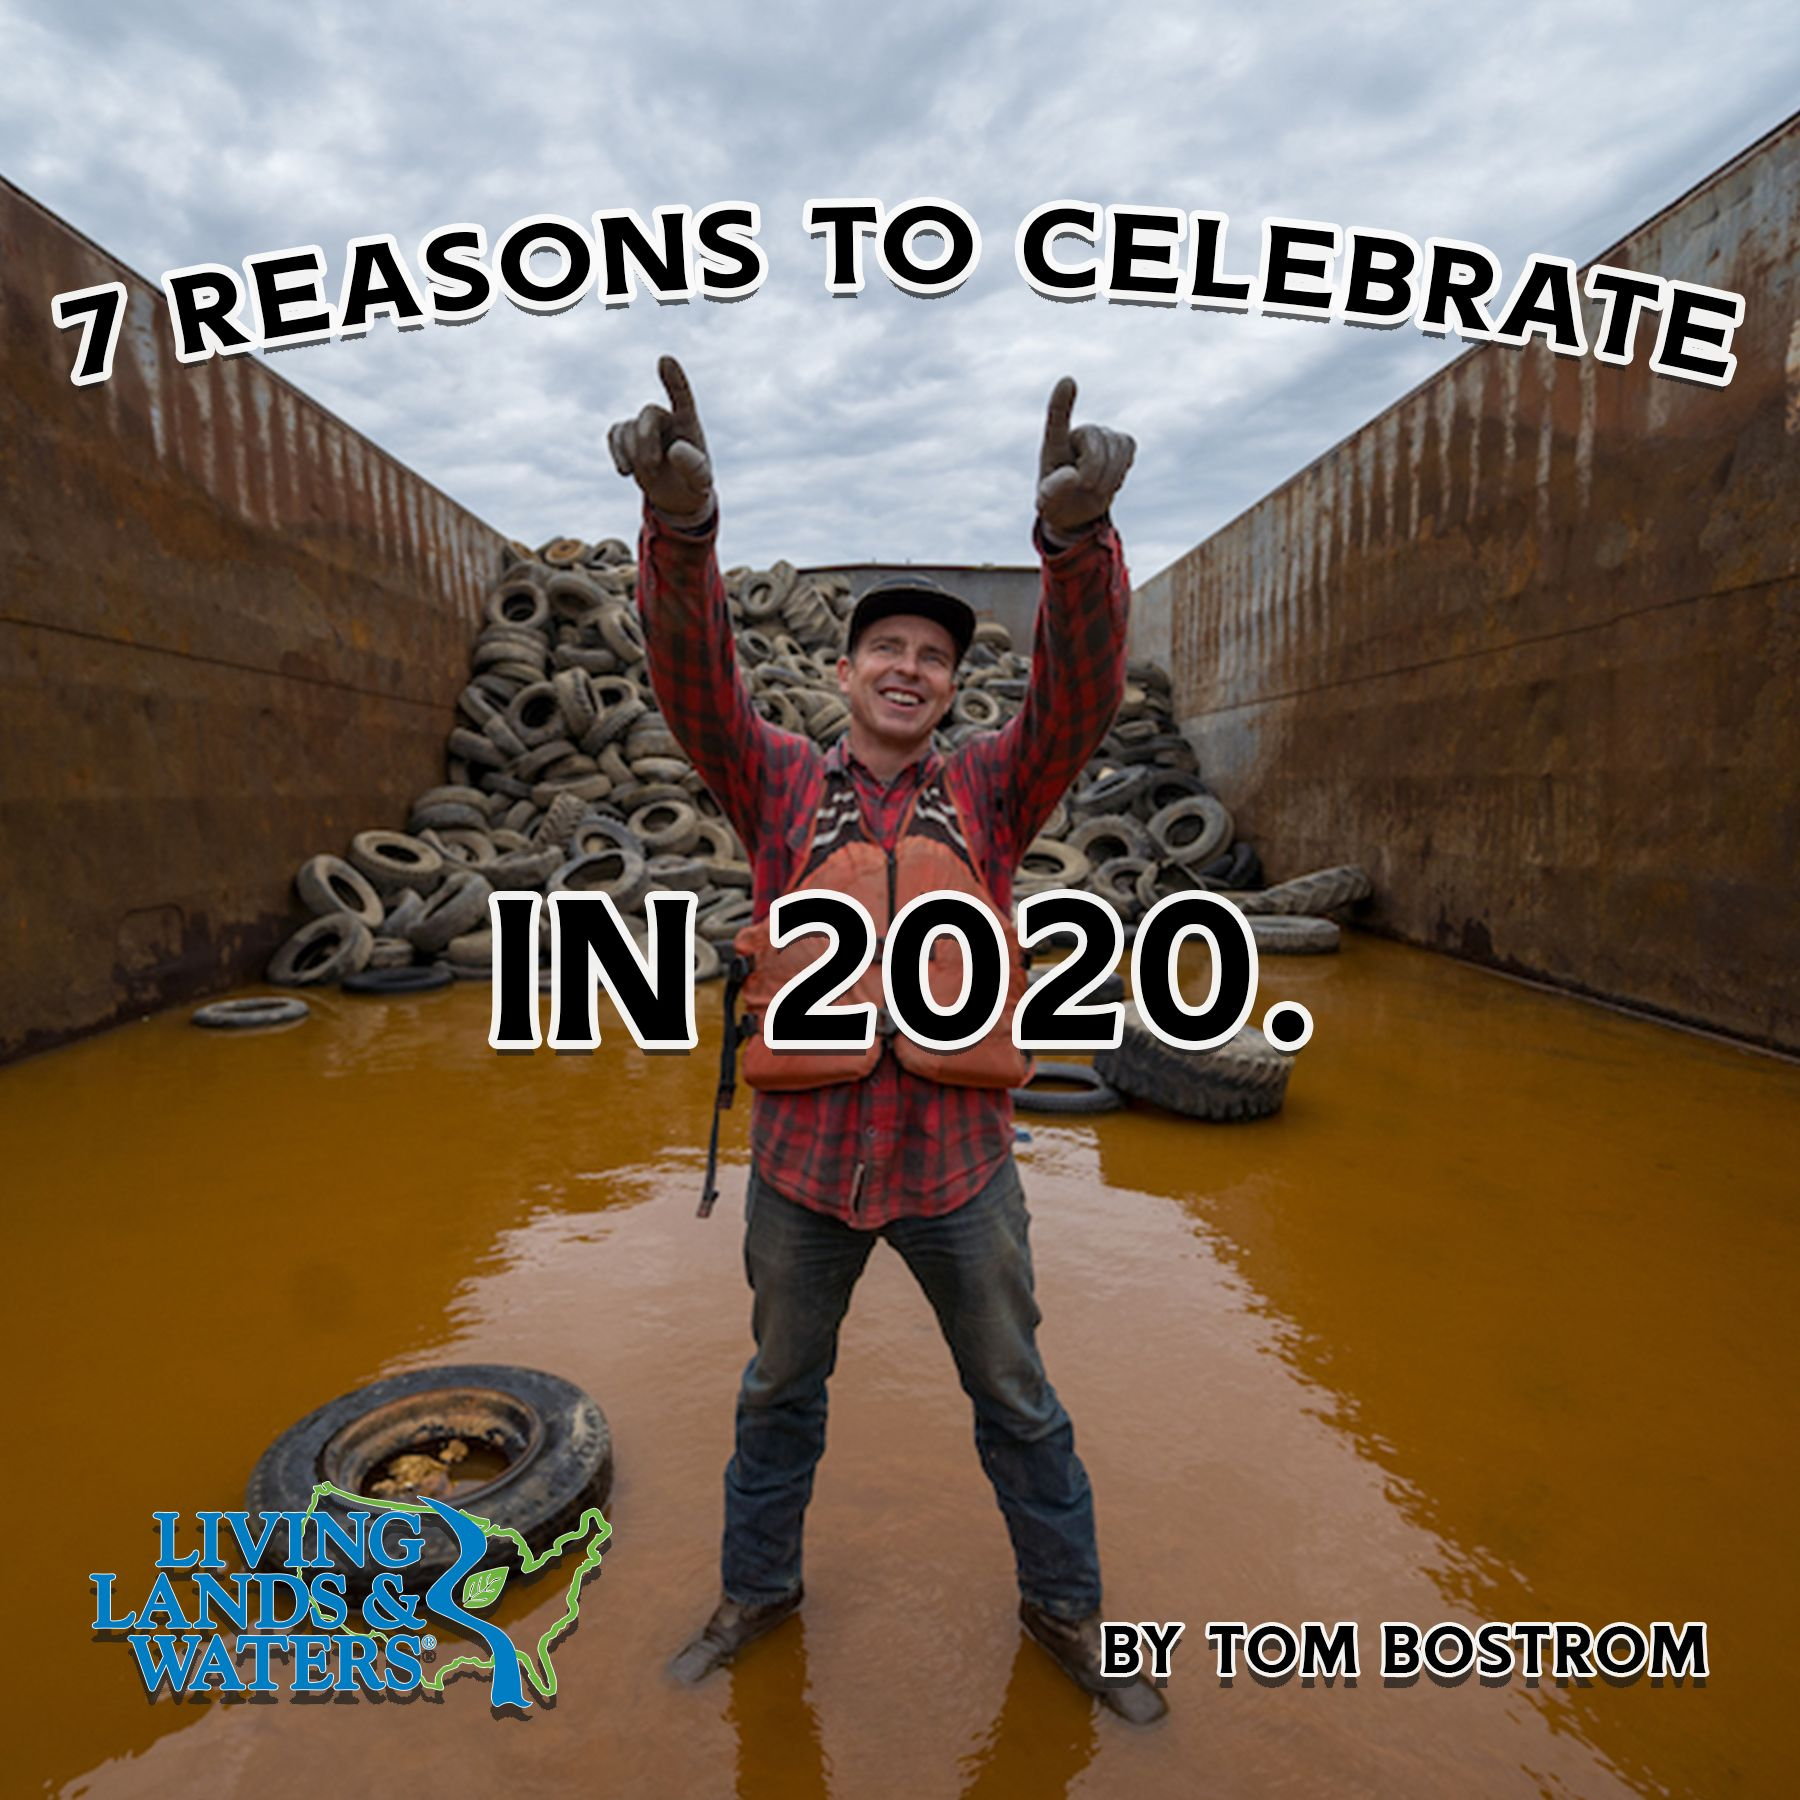 7 Reasons to Celebrate in 2020